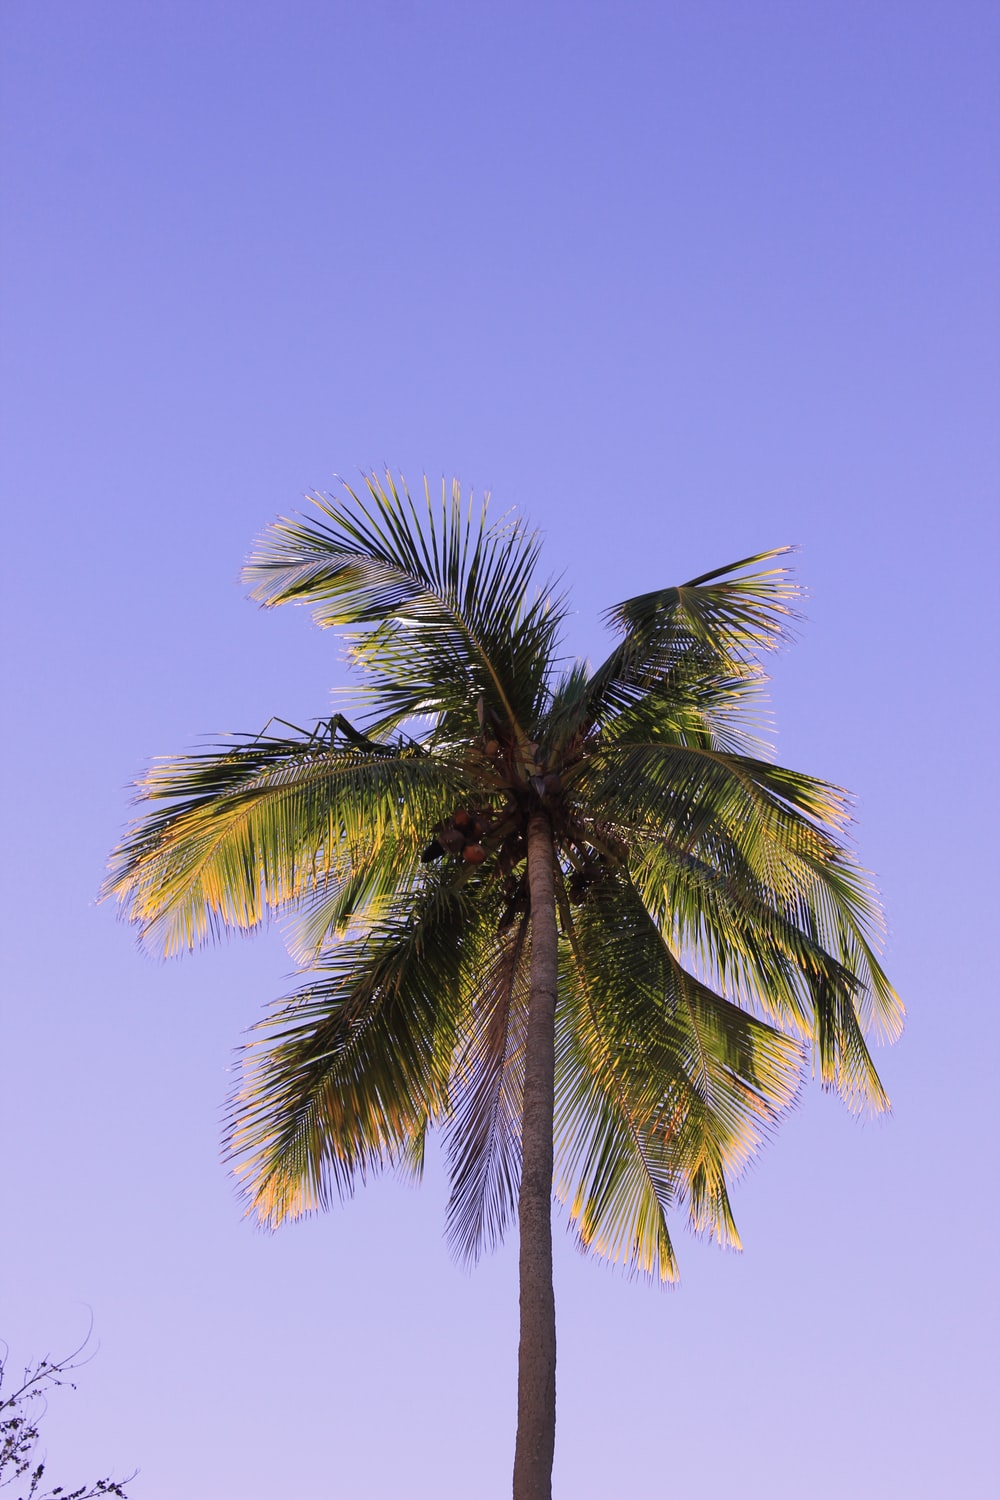 Best 500+ Coconut Tree Pictures [HD] | Download Free Images on Unsplash